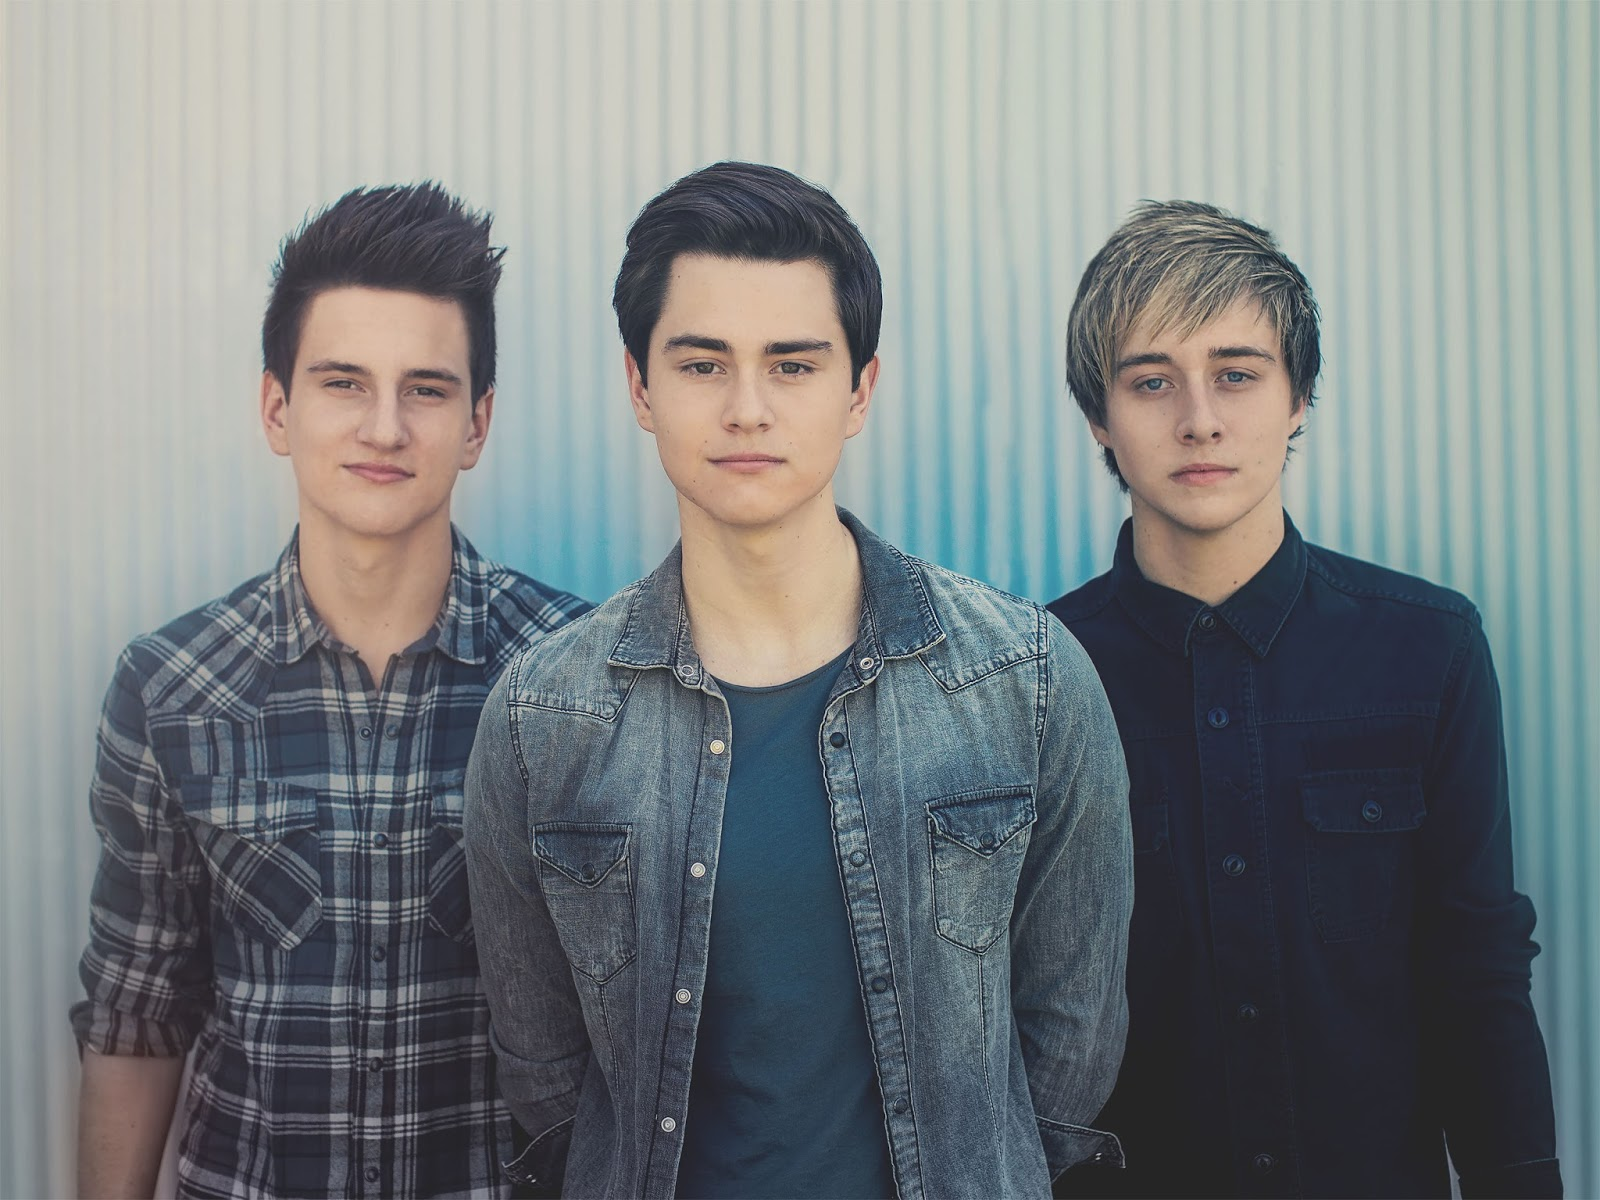 American Pop Band 'Before You Exit' is coming to South East Asia